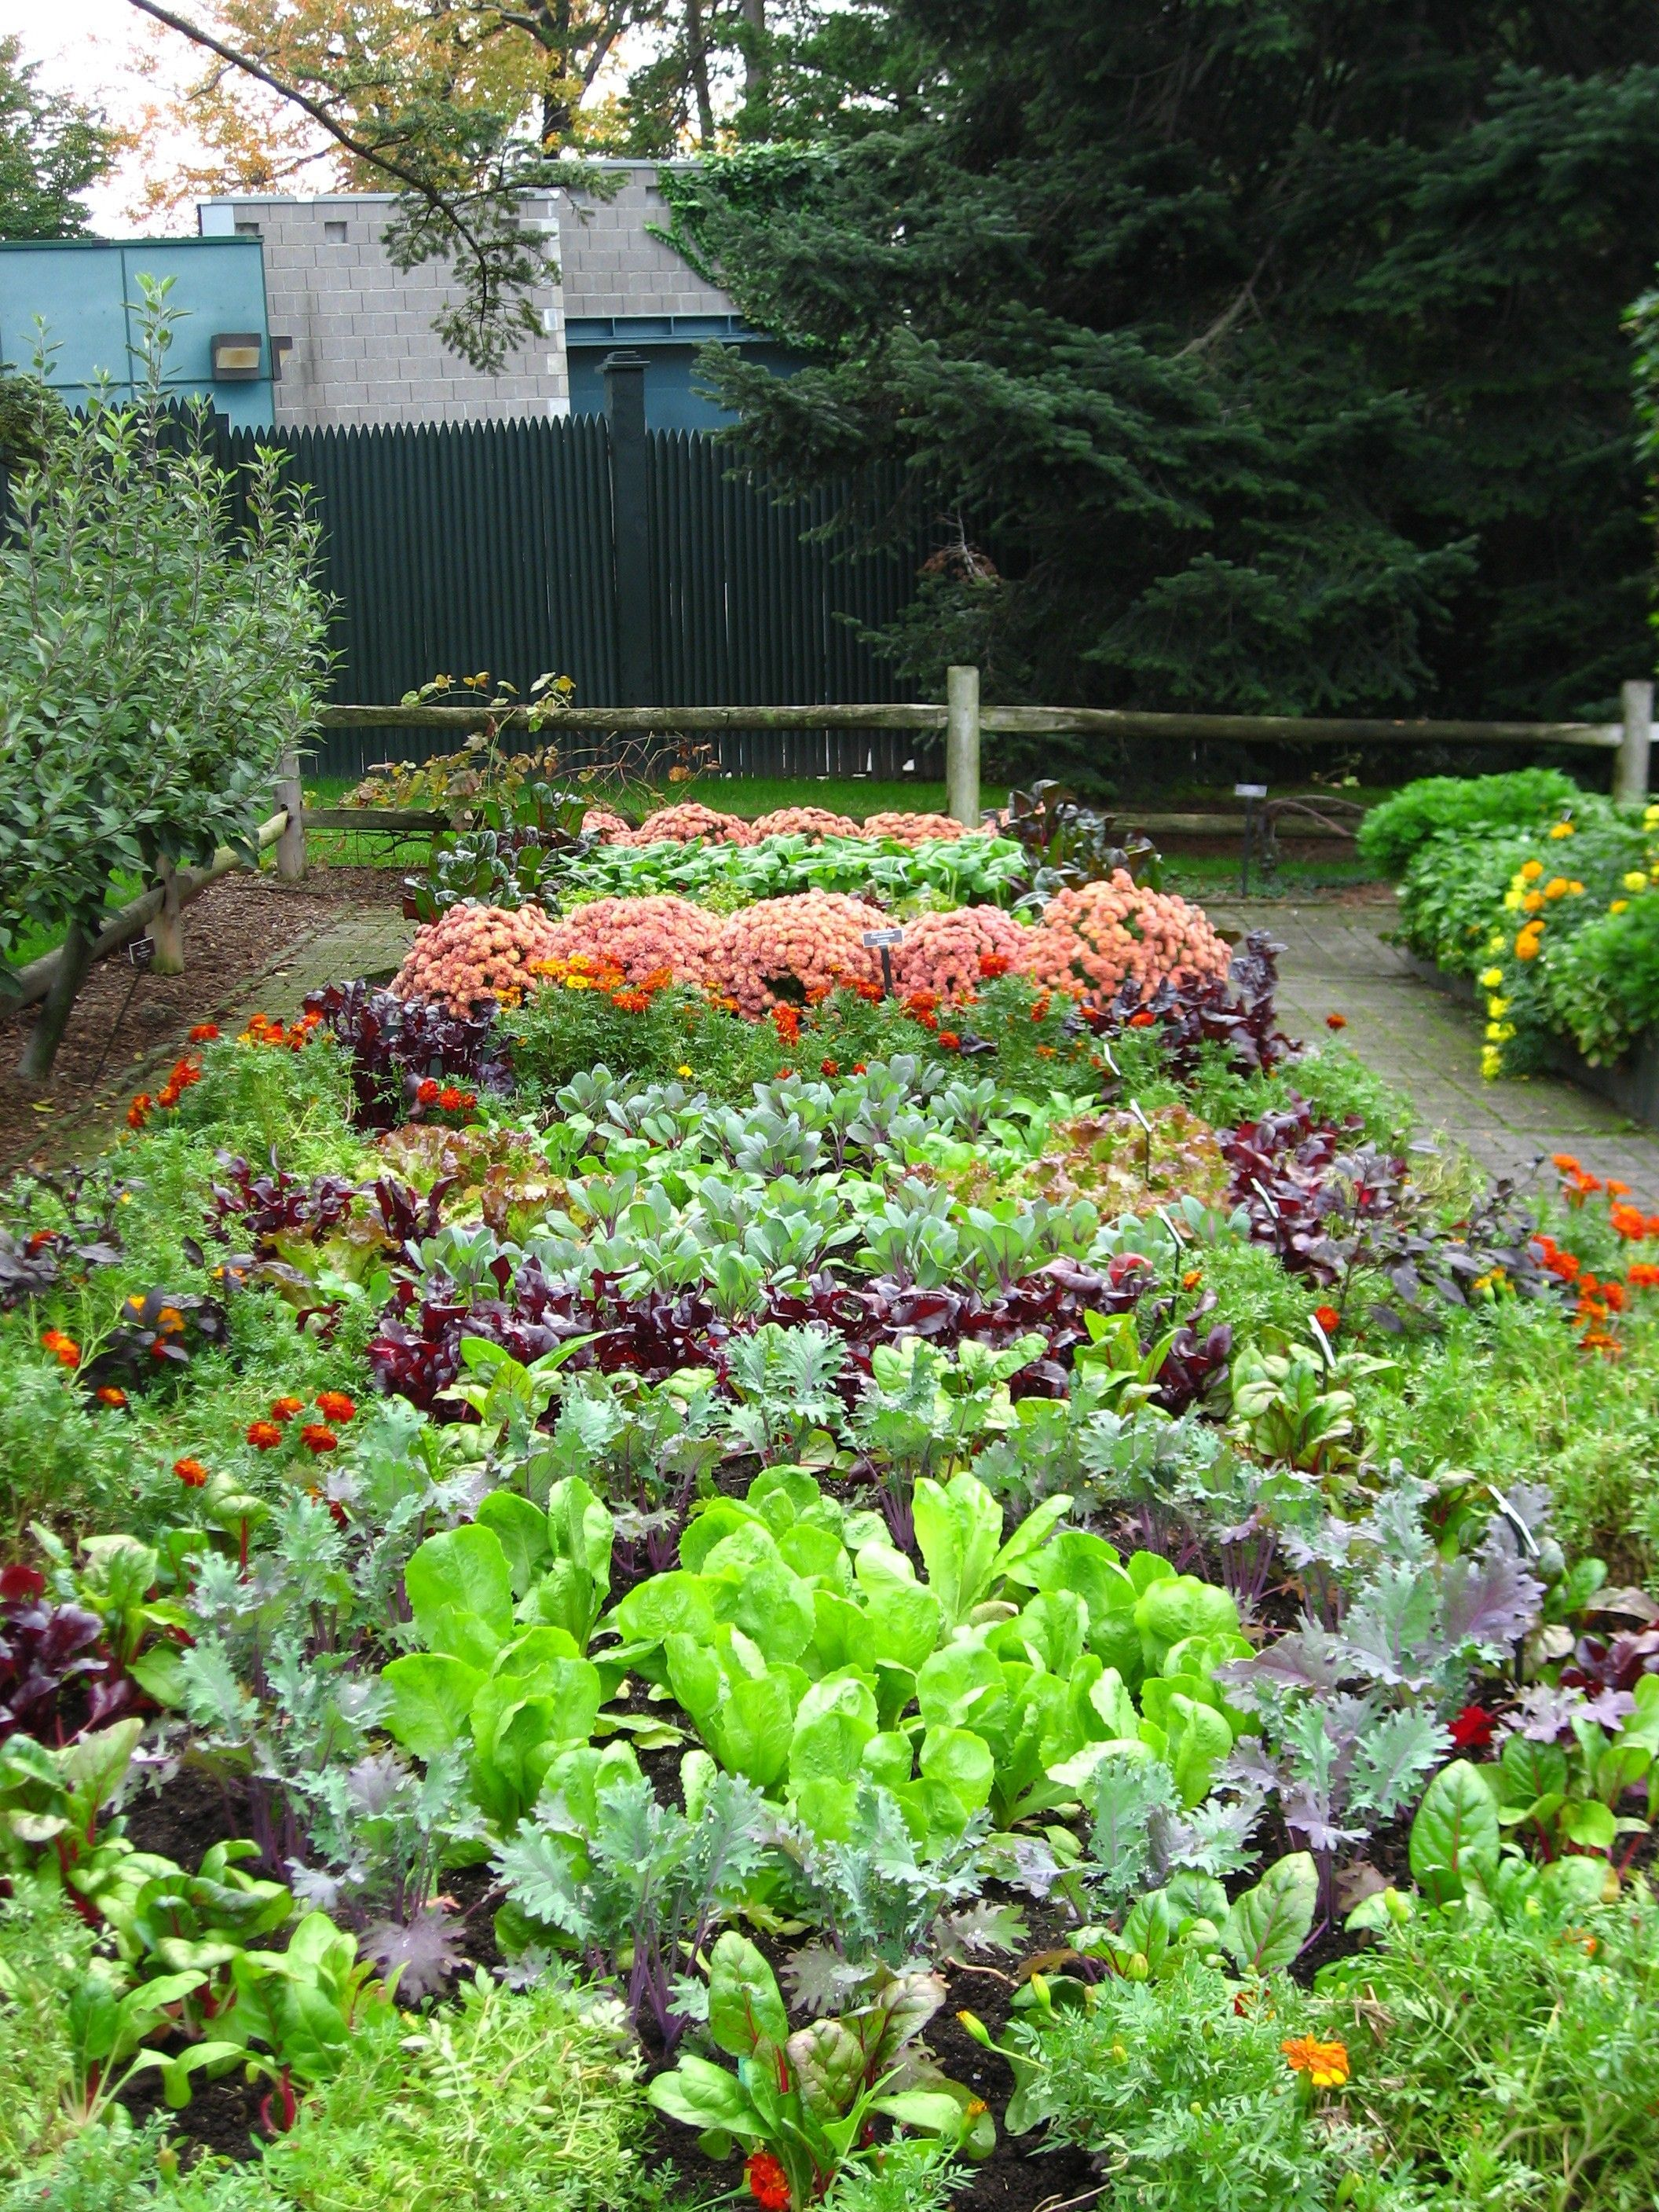 Ornamental Kitchen Garden Blend A Variety Of Vegetables Together In A Veggie Garden To